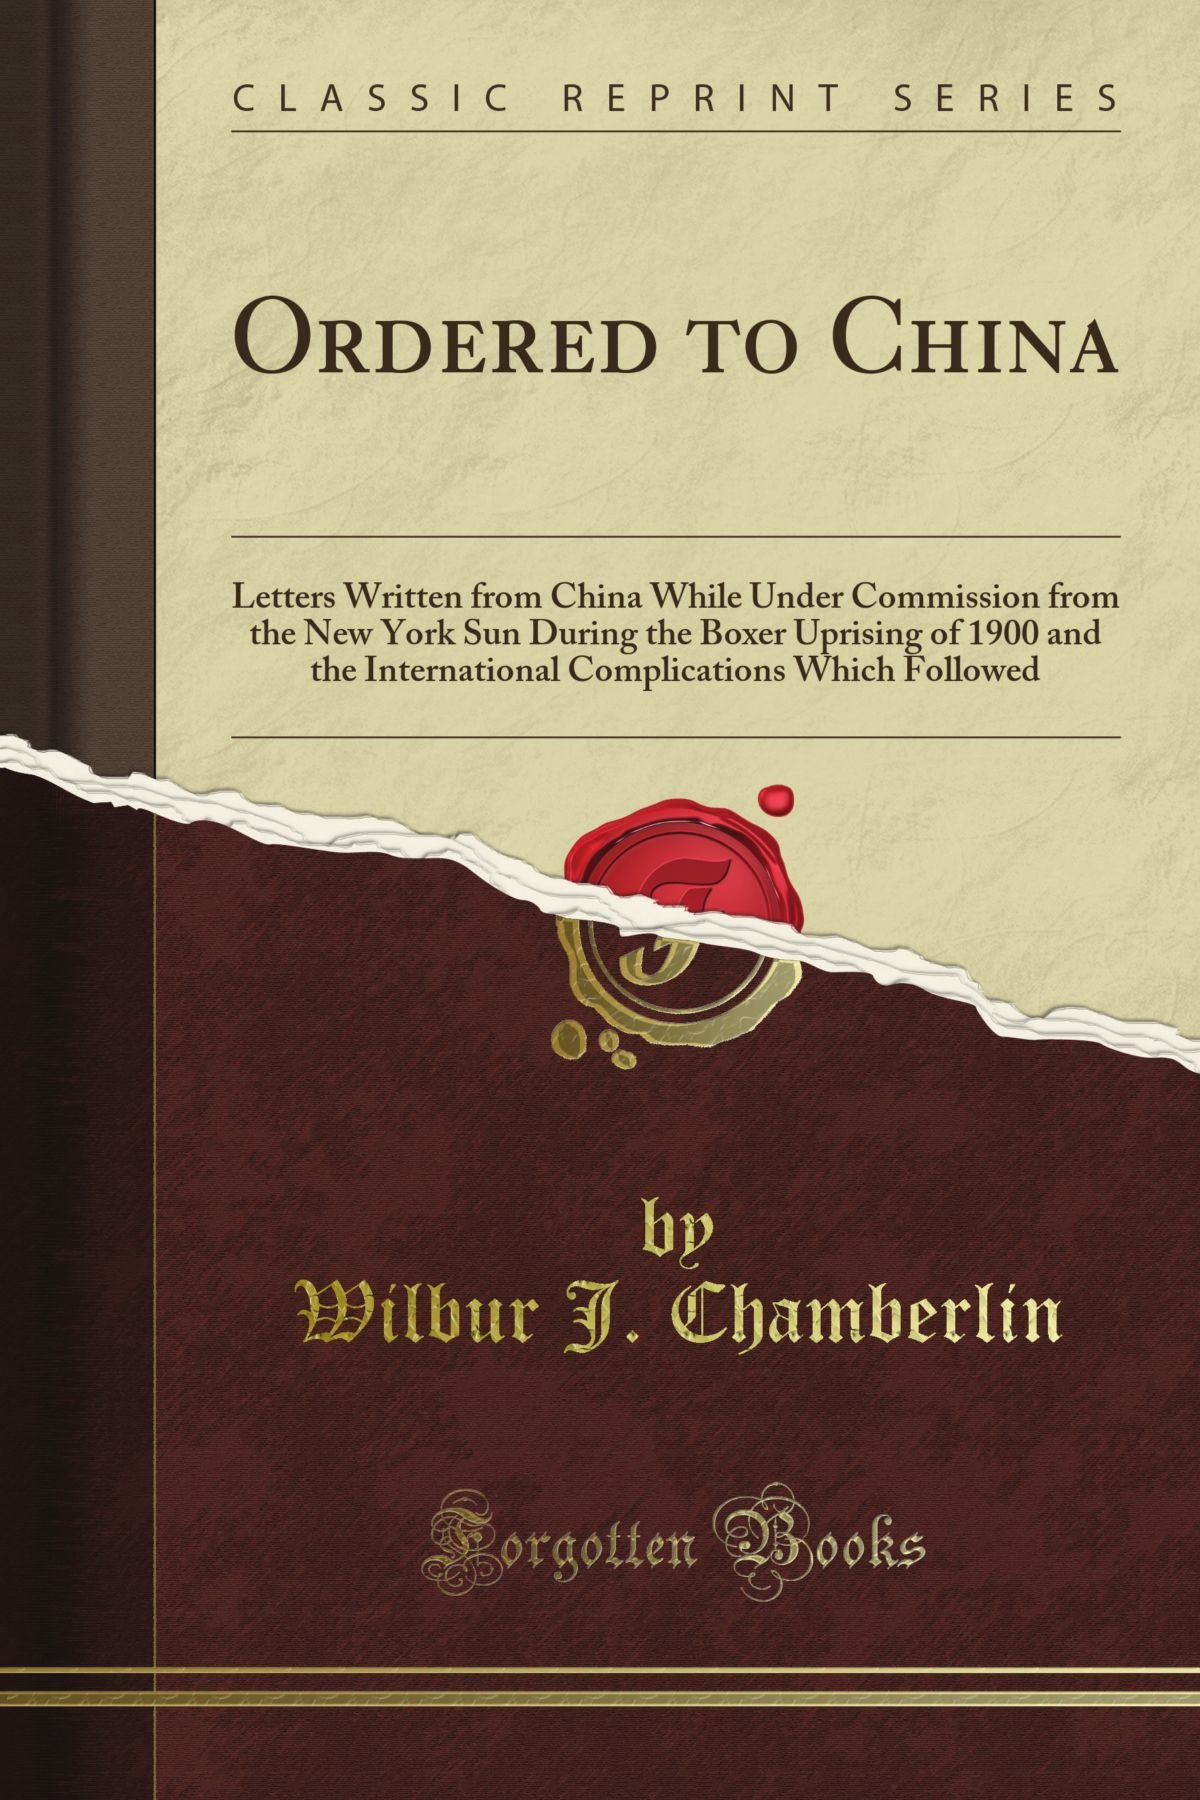 Ordered to China: Letters Written from China While Under Commission from the New York Sun During the Boxer Uprising of 1900 and the International Complications Which Followed (Classic Reprint) PDF